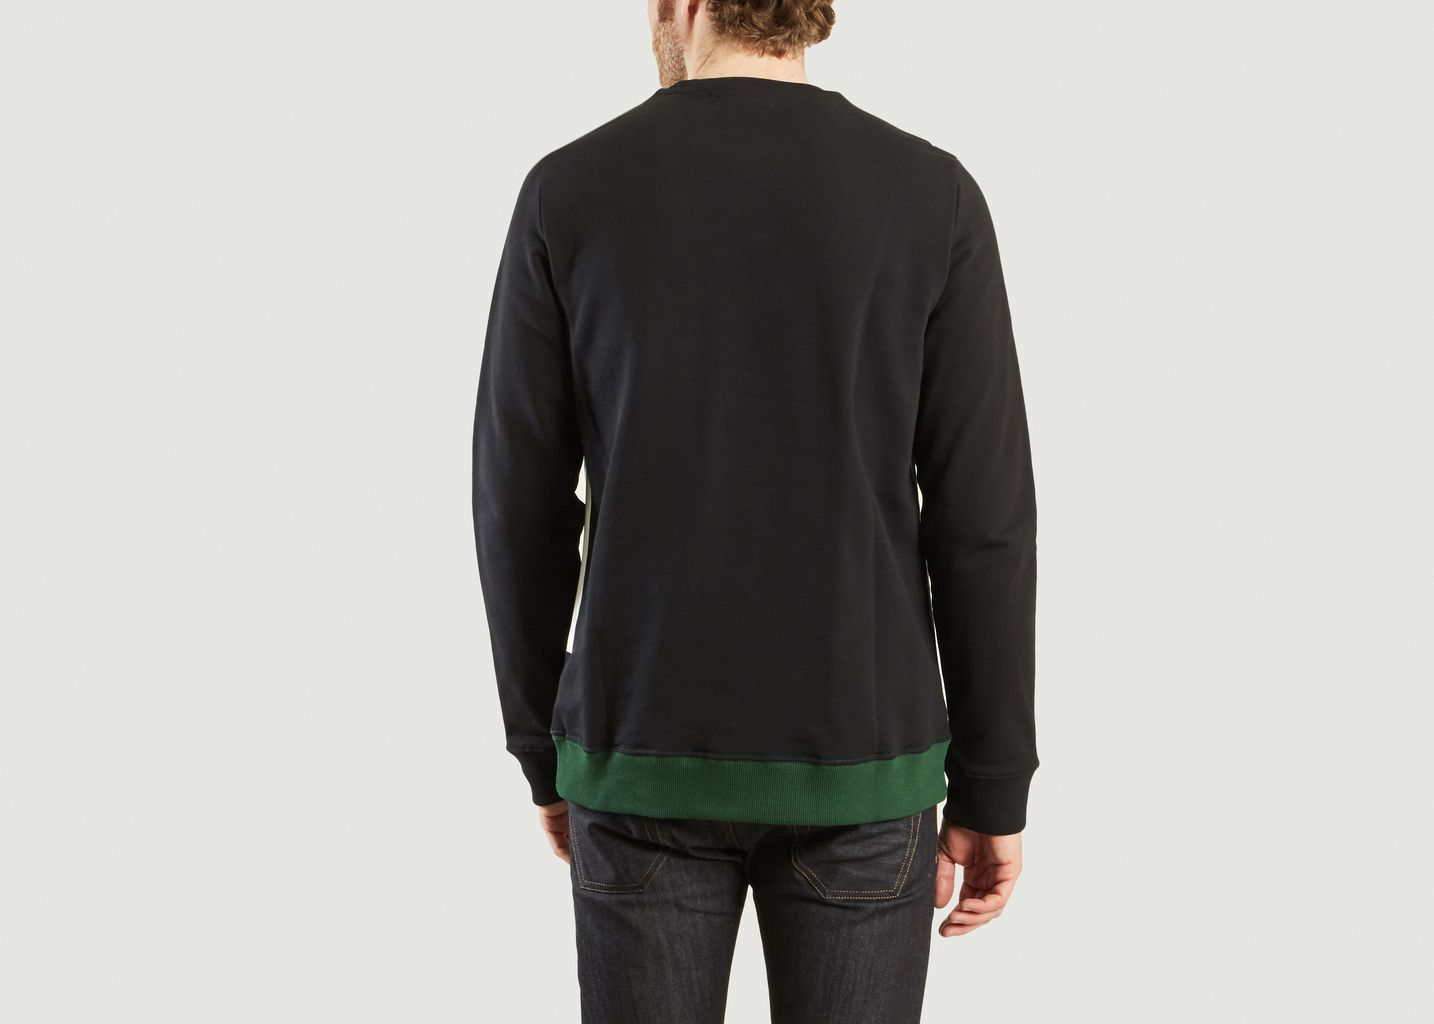 sweat a bande vert bouteille fred perry x raf simons l 39 exception. Black Bedroom Furniture Sets. Home Design Ideas